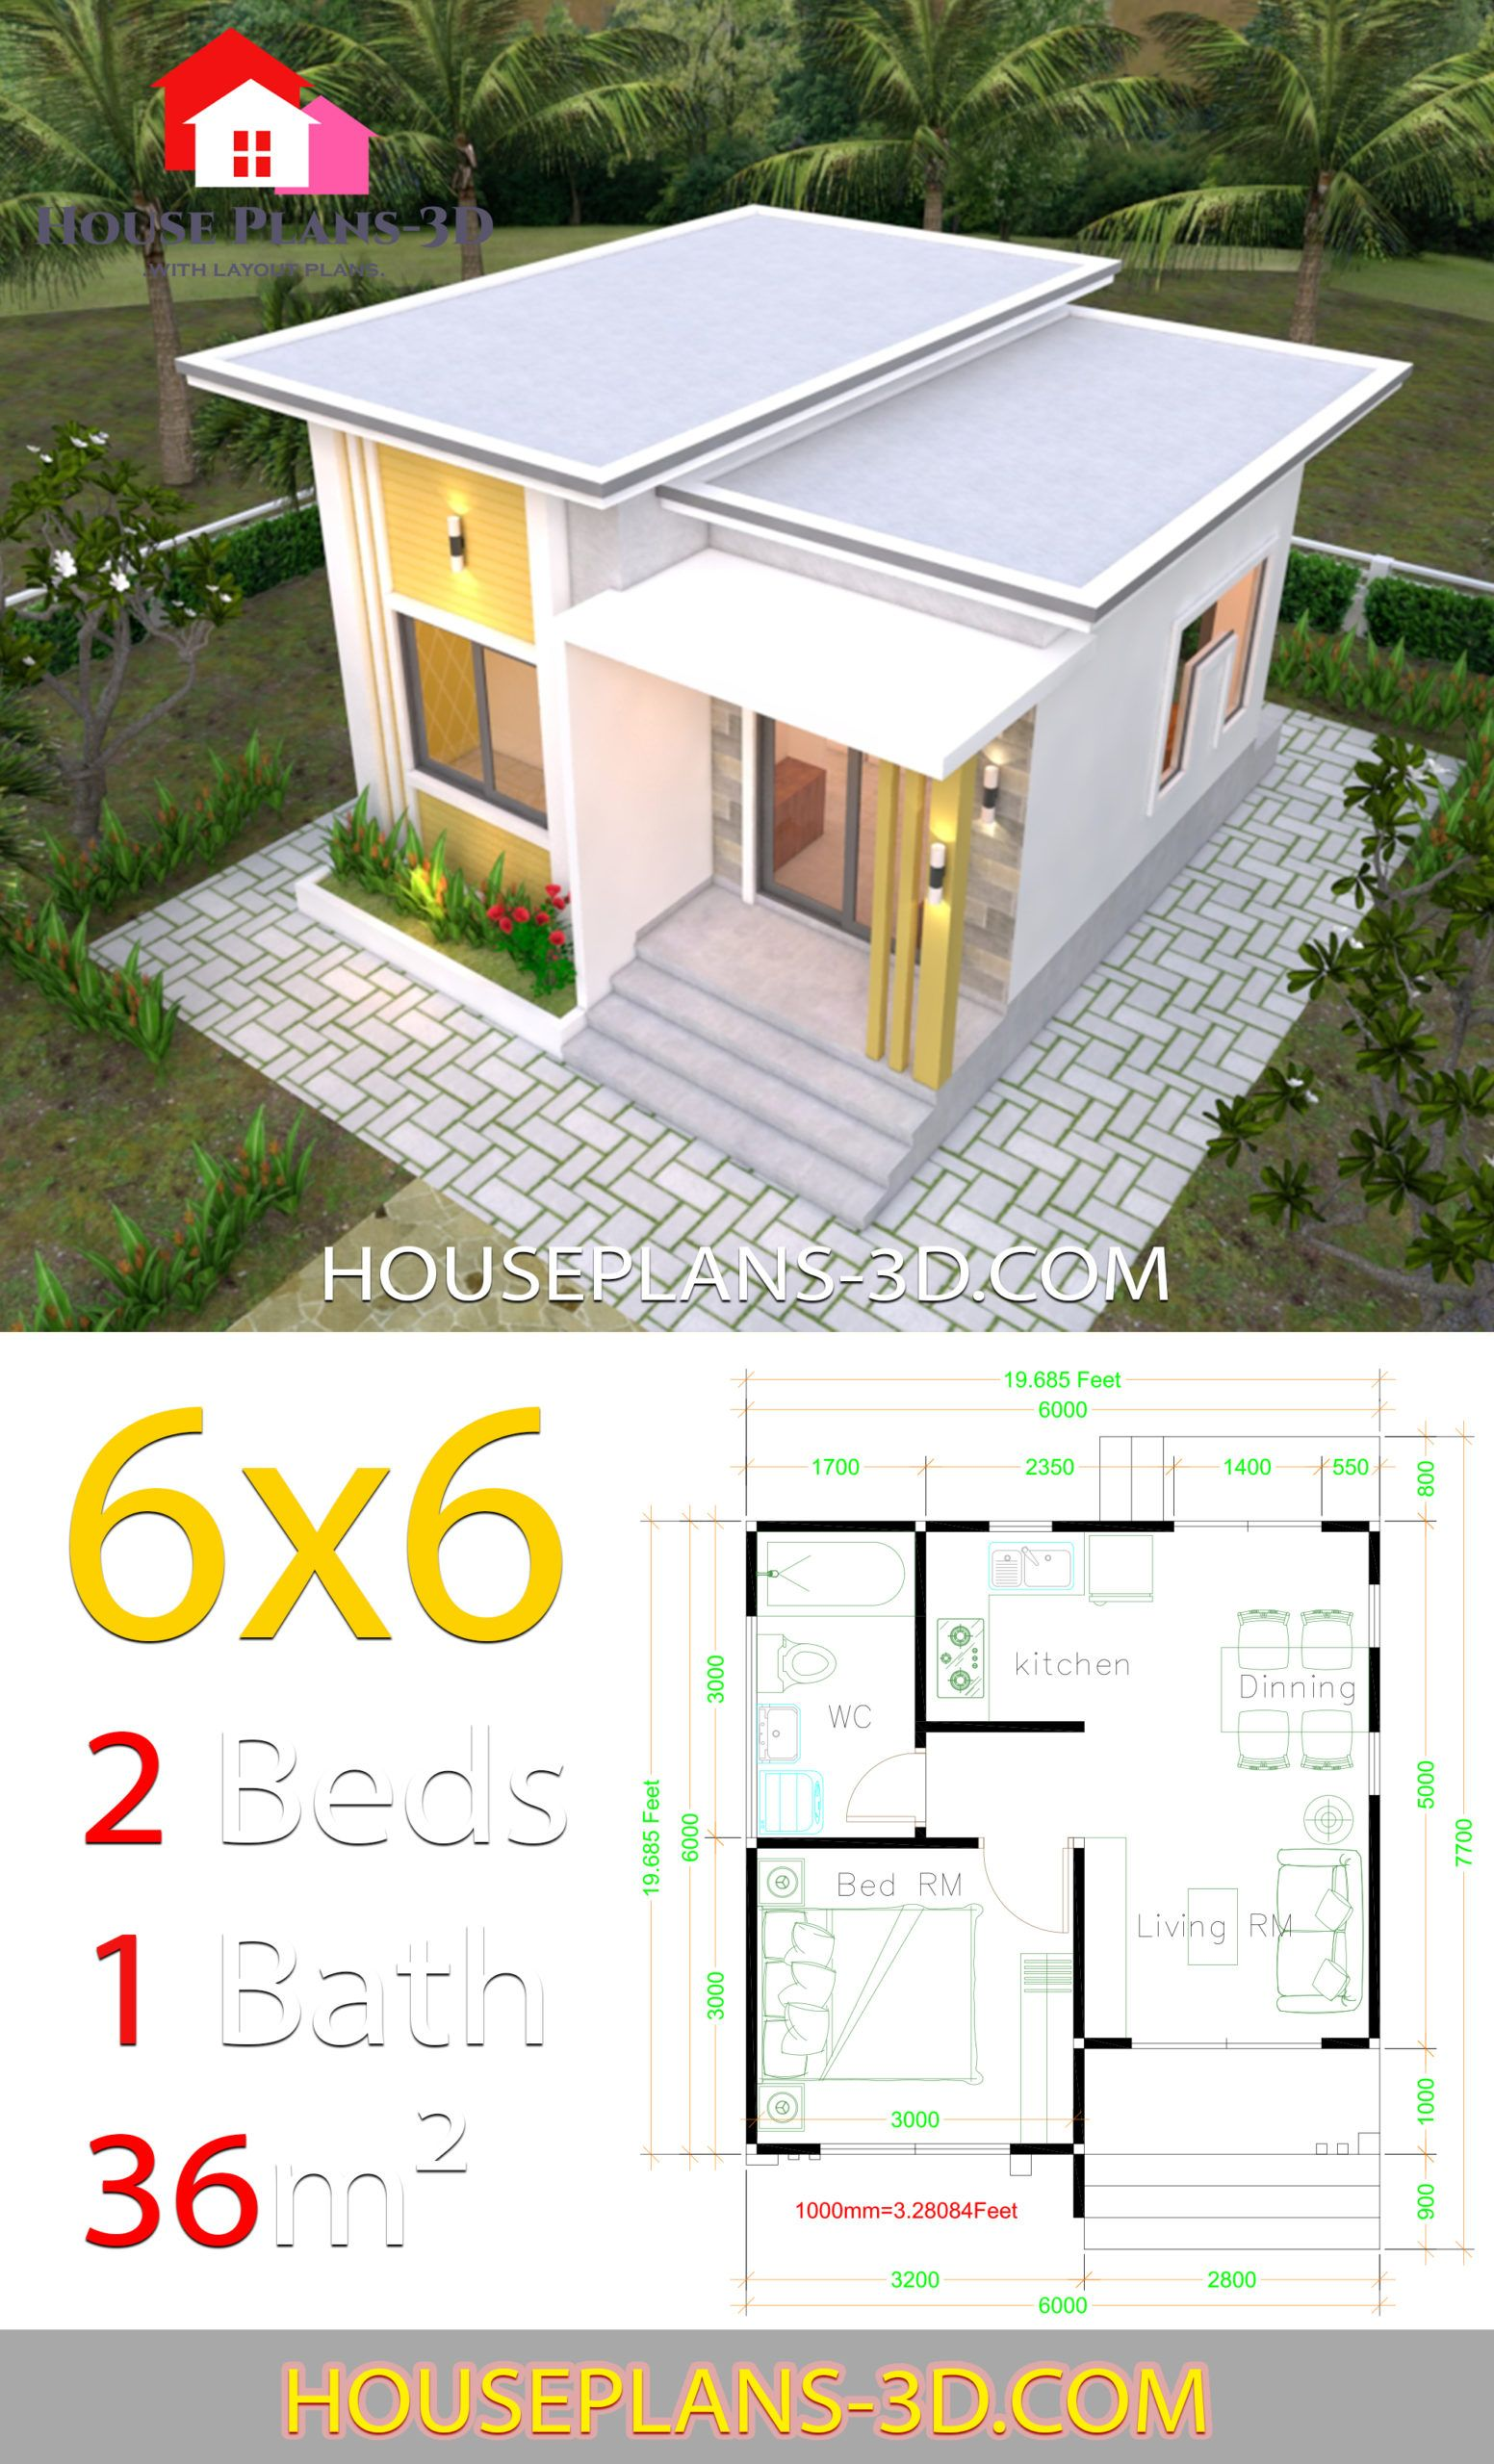 House Plans 6x6 With One Bedrooms Flat Roof House Plans 3d Small House Design Philippines One Bedroom House Plans Flat Roof House